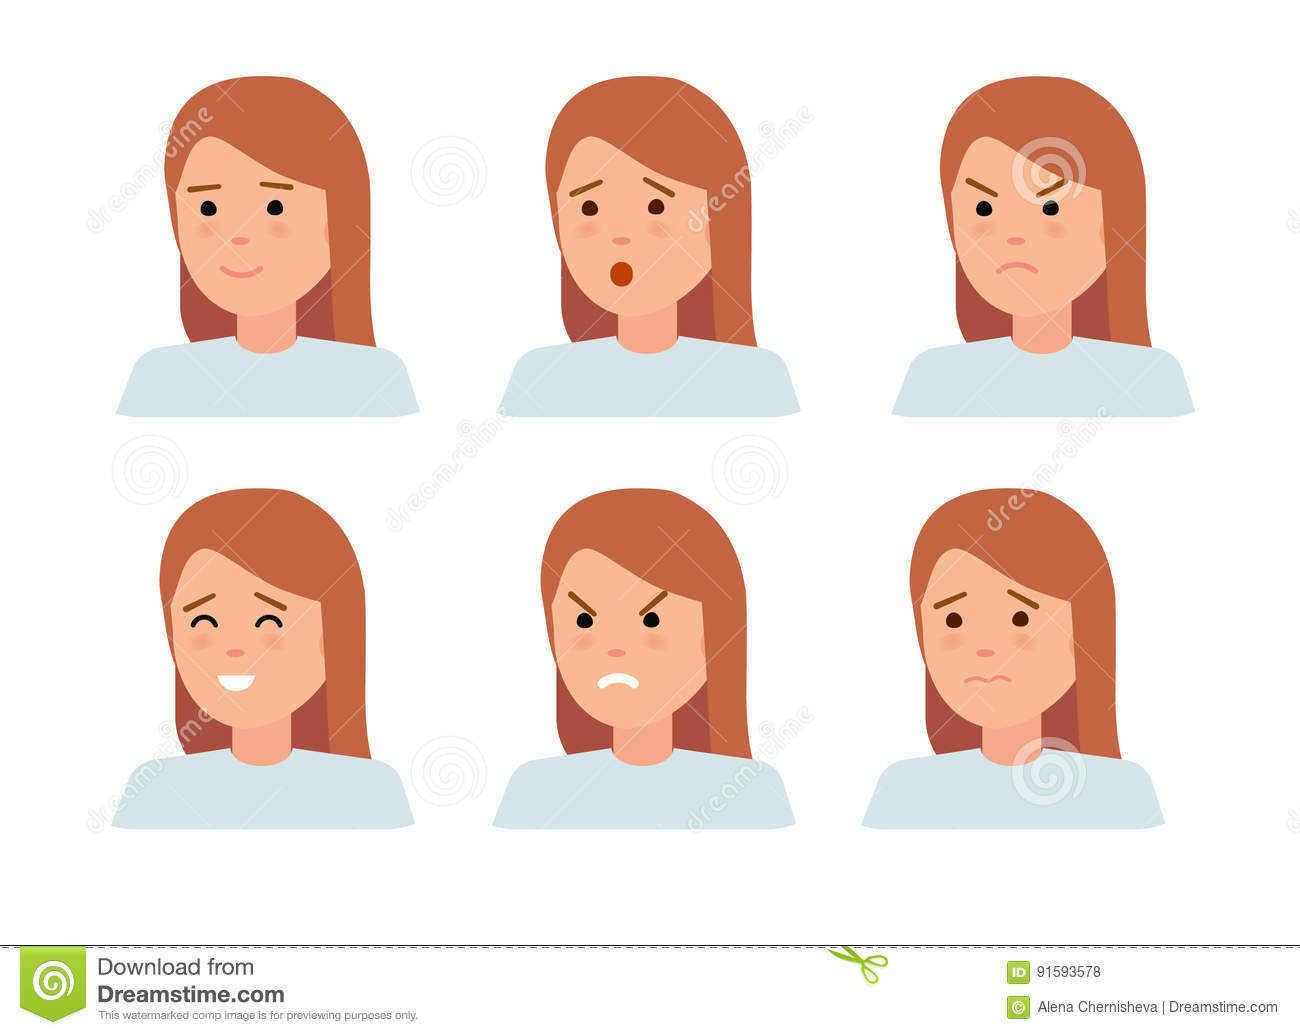 Download Set Of Female Facial Emotions. Woman Emoji Character With Different Expressions. Stock Vector - Illustration of emotional, fashion: 91593578